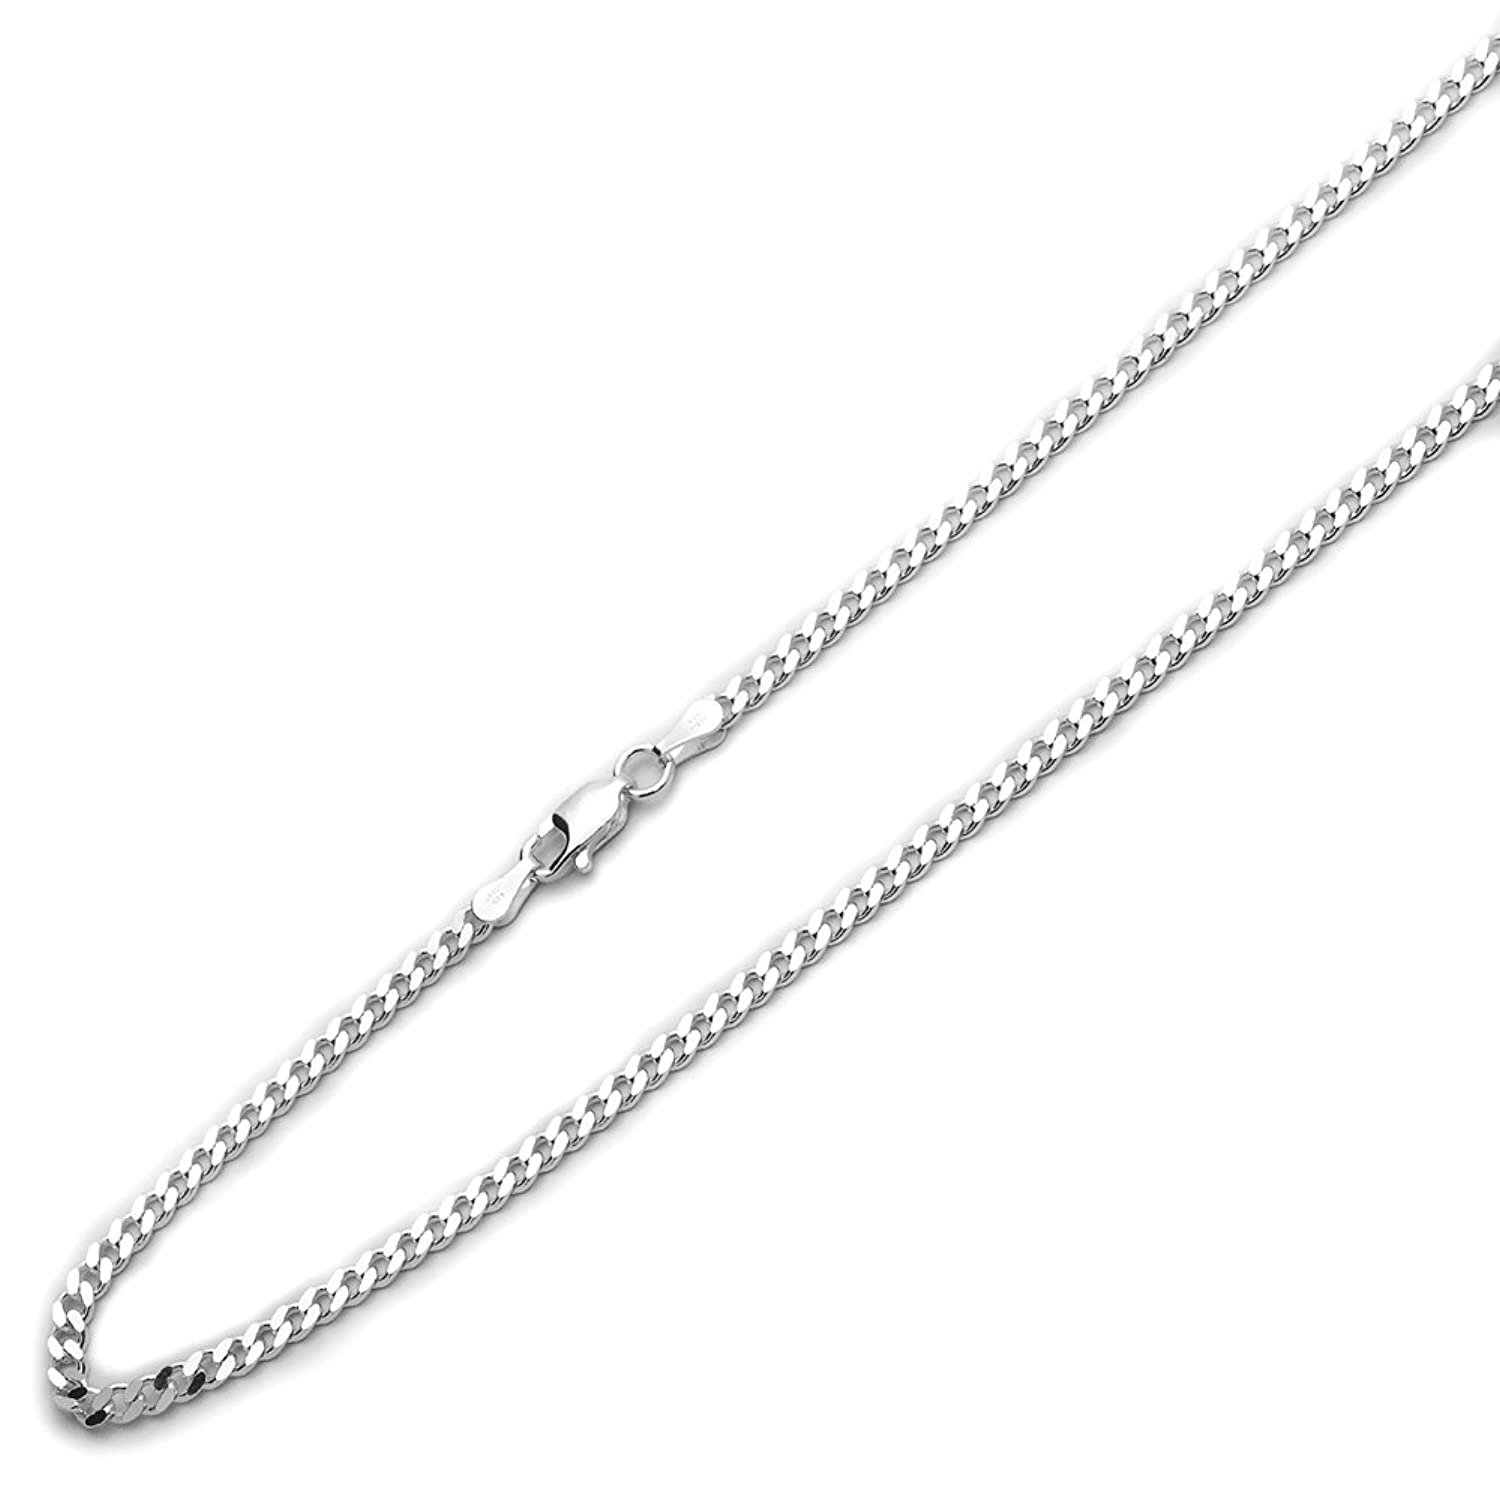 Quality Sterling Silver Ladies Curb Chain 18 R2fr6u